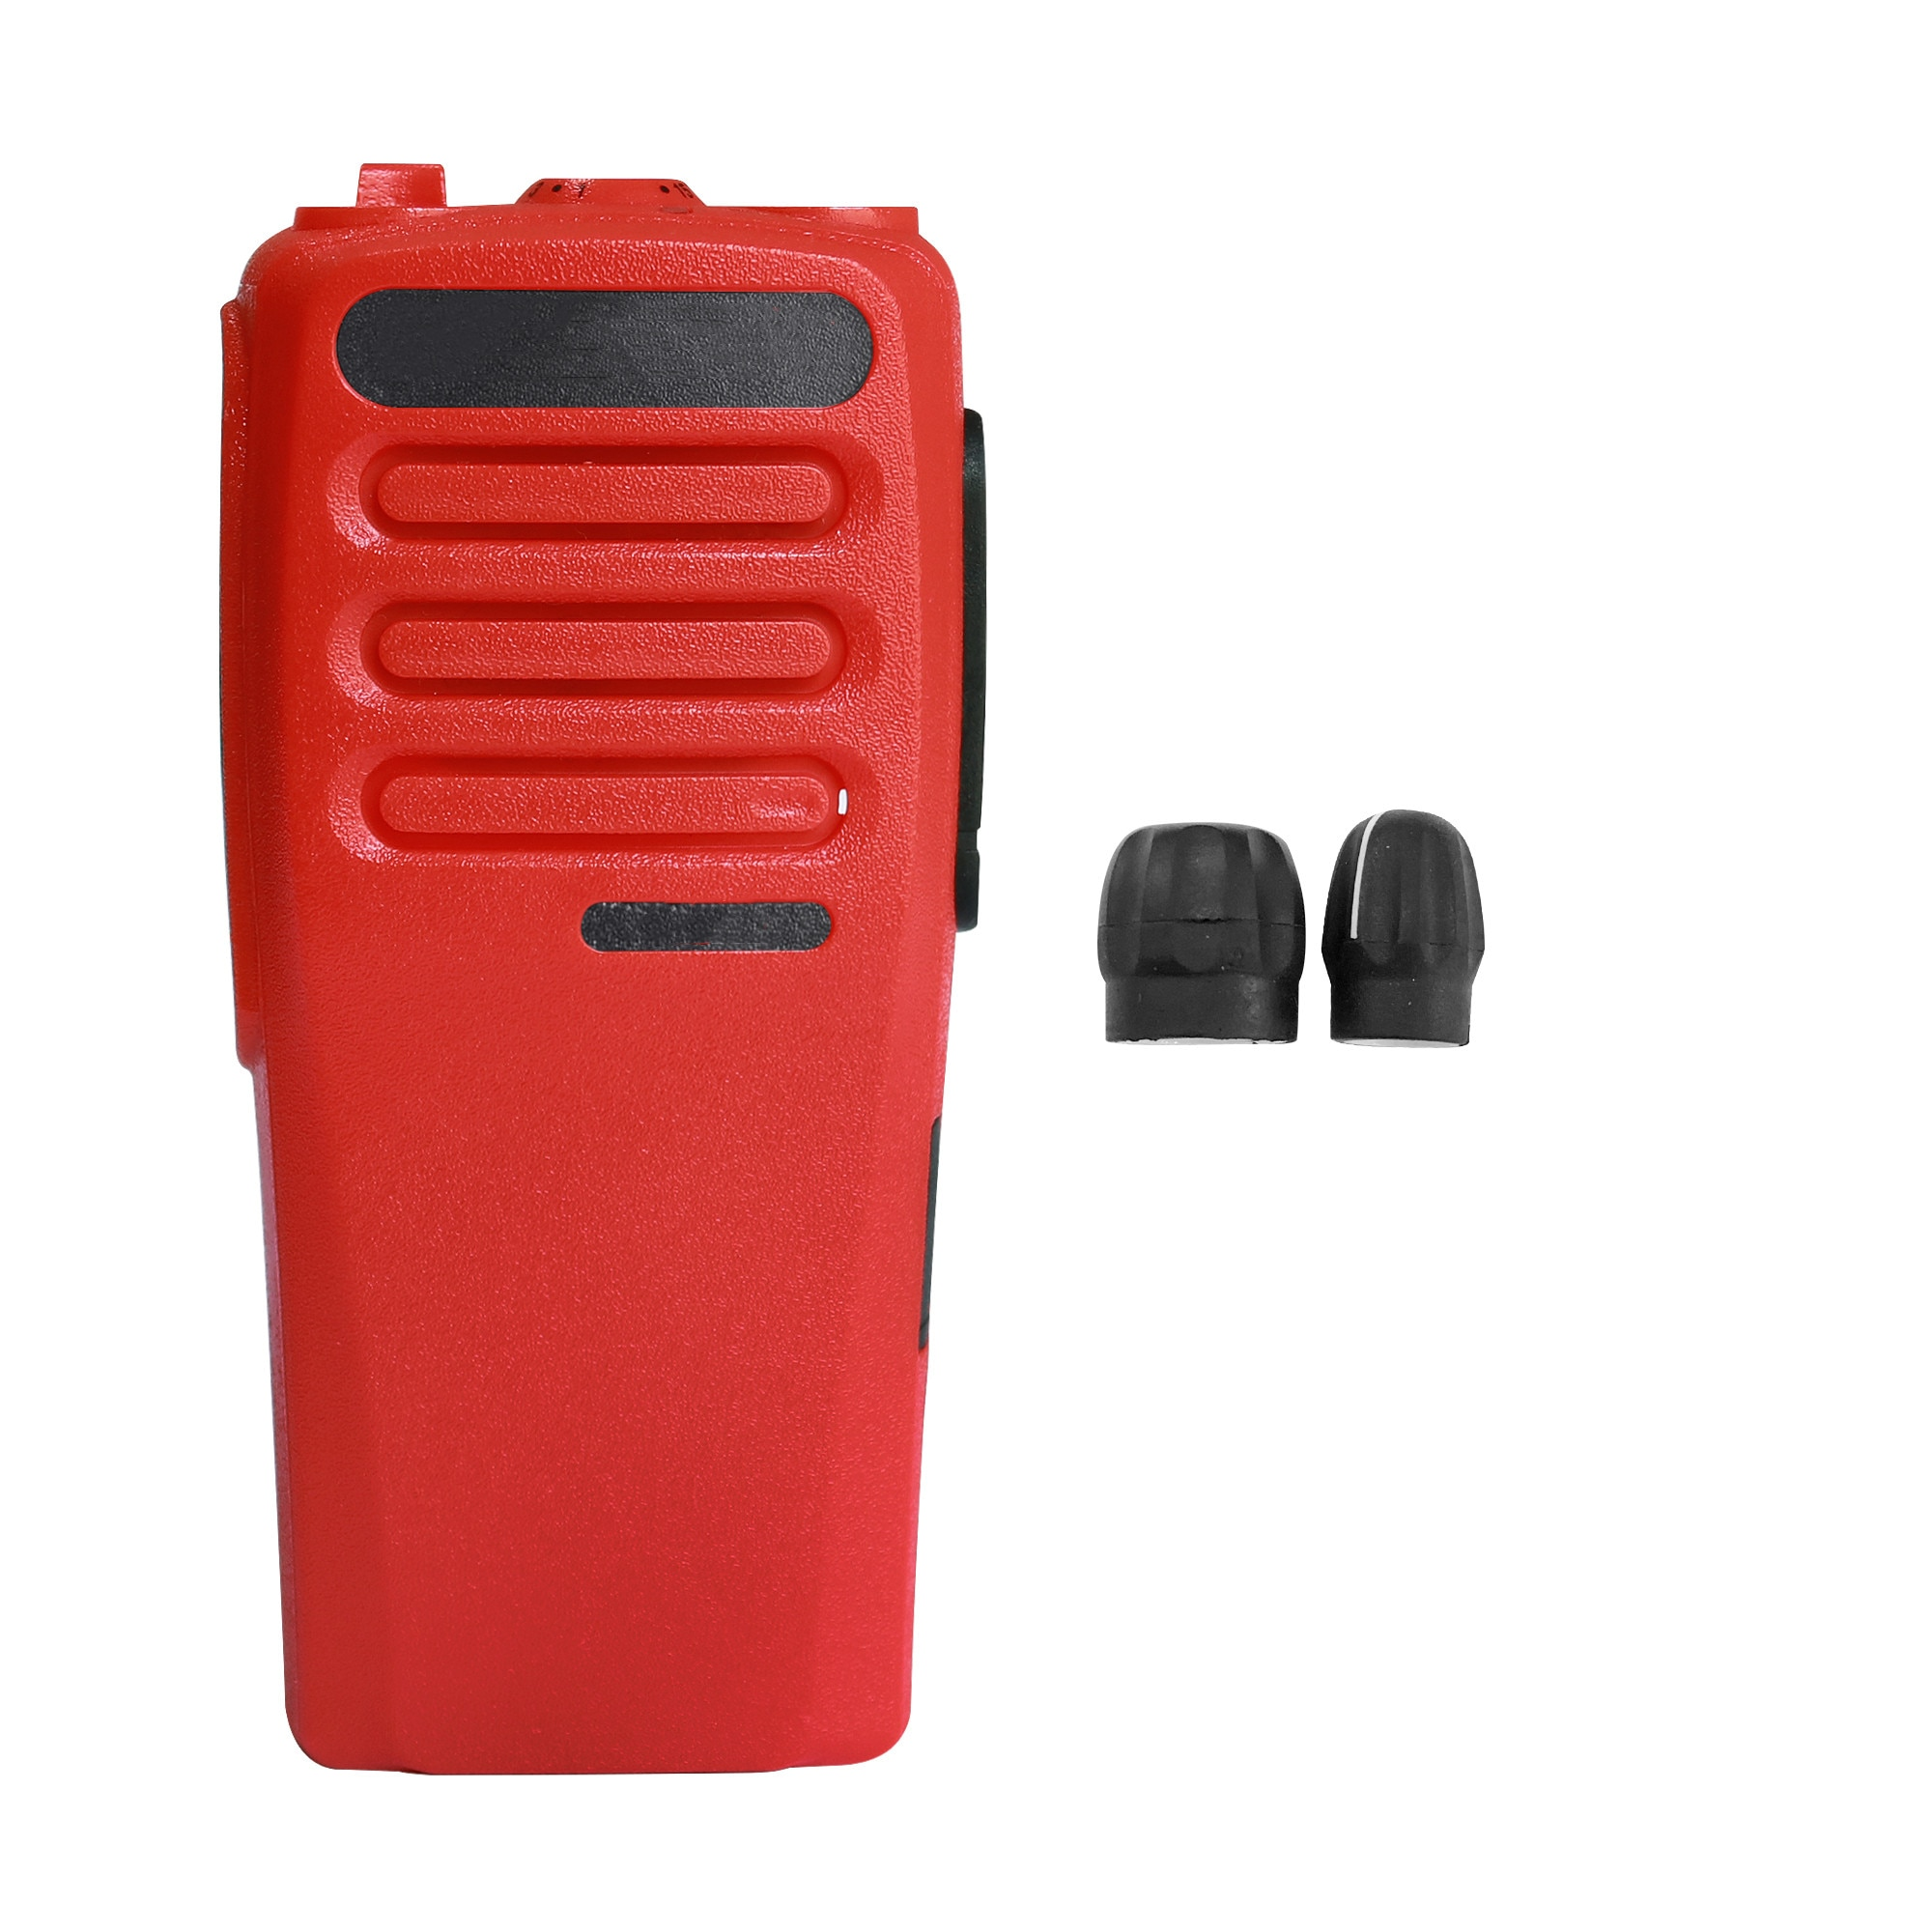 H98c933d7059744349a3109b9b9472d13Y - Red Walkie Talkie Replacement Repair Case Housing Cover for Motorola CP200D DEP450 Portable Two Way Radio